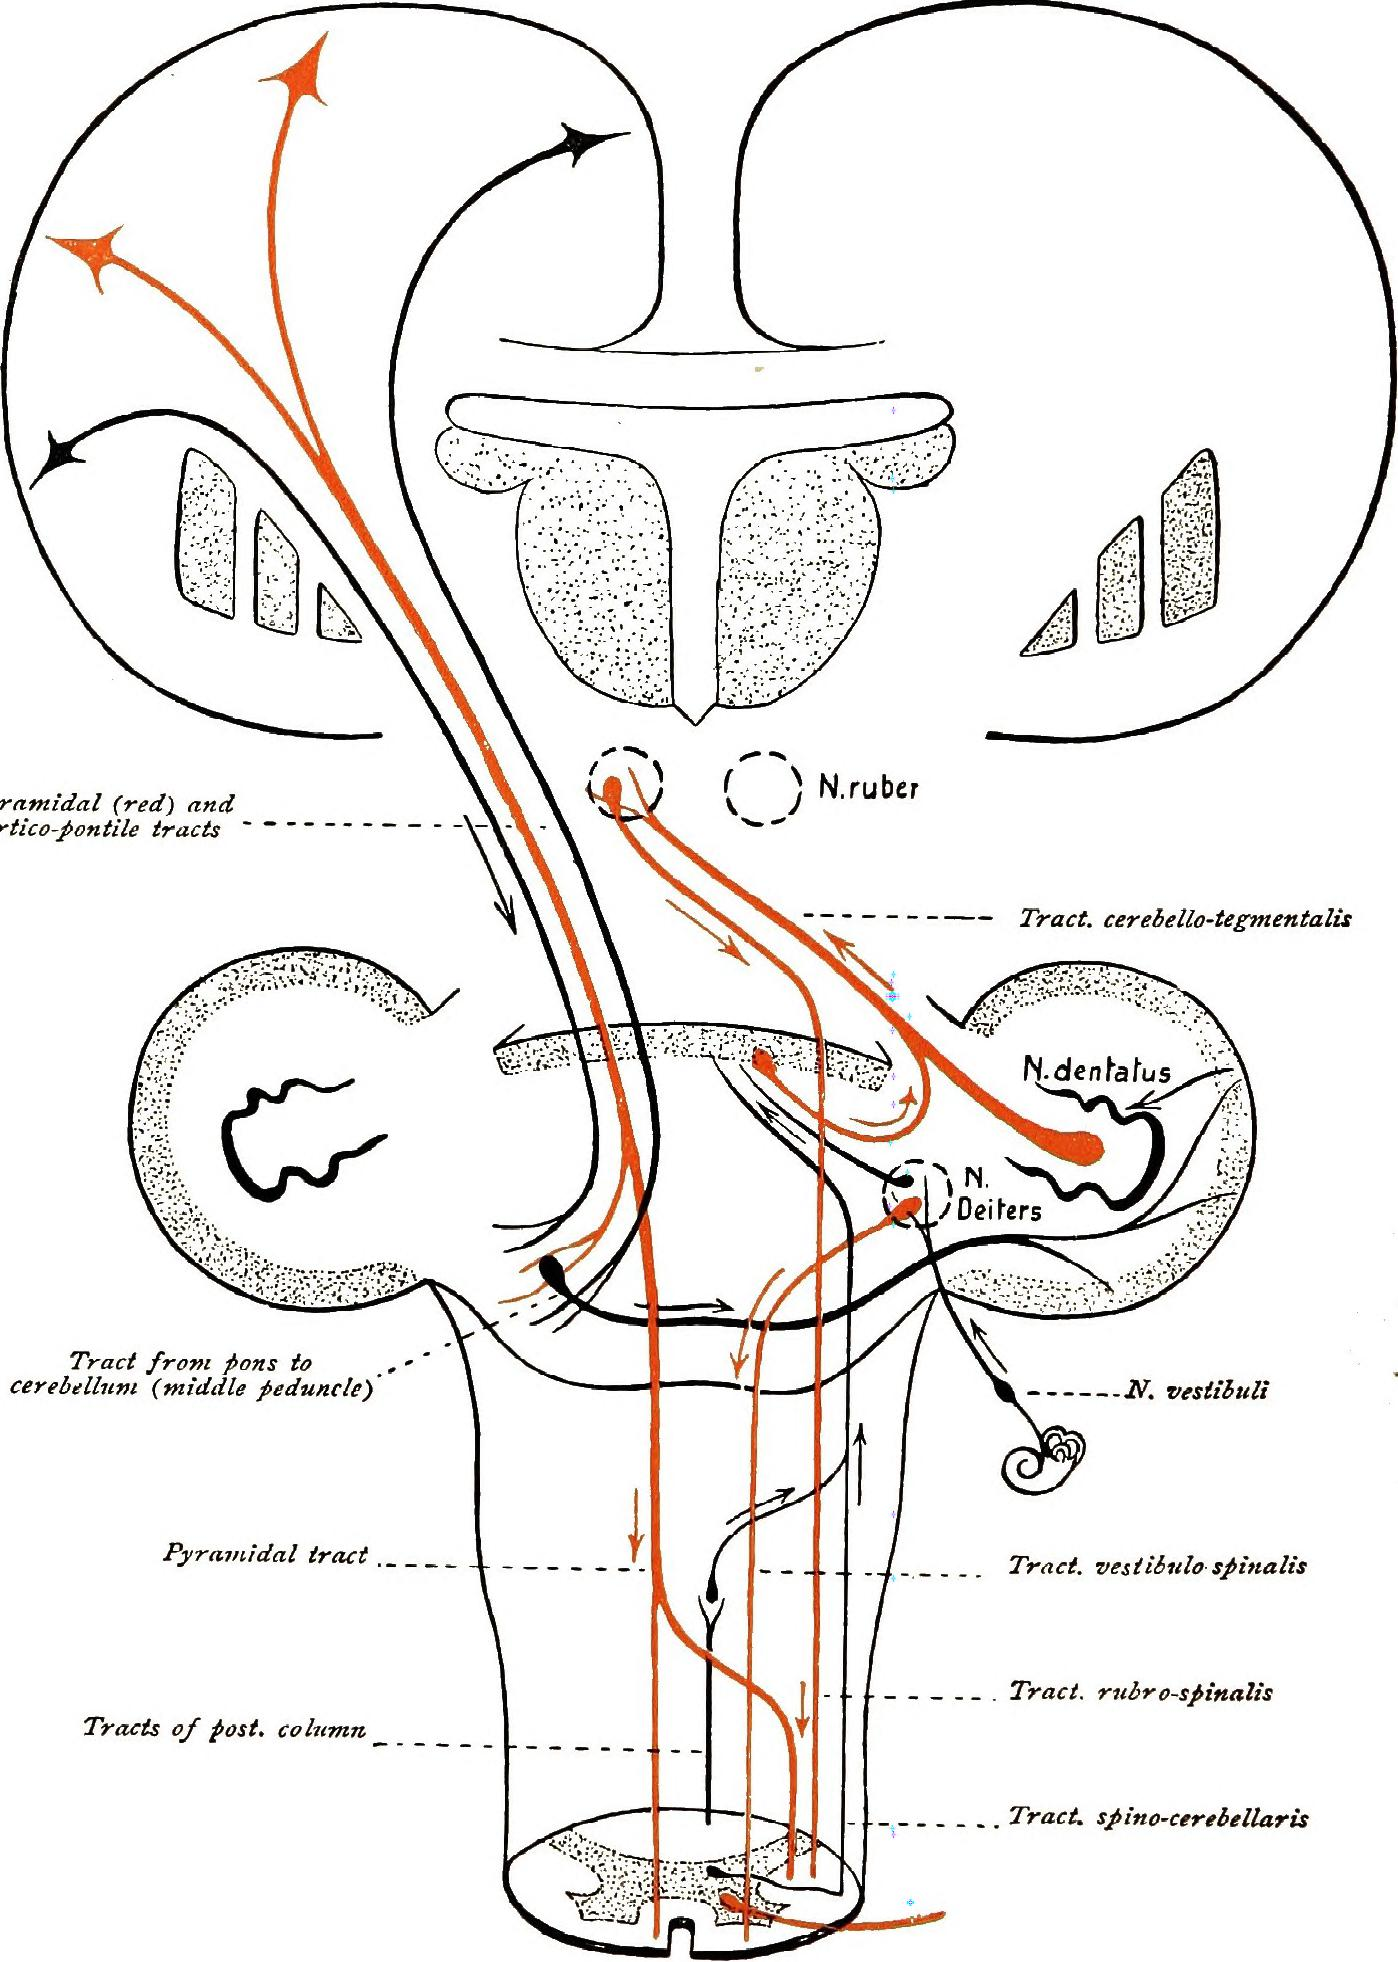 File Brain and spinal cord  a manual for the study of the morphology and fibre Tracts of the central nervous system  1912   14577681369 furthermore 10267254 moreover Ct Mri Of Central Nervous System besides hioxus further Chemistry Of Ltp And Ltd. on brain morphology